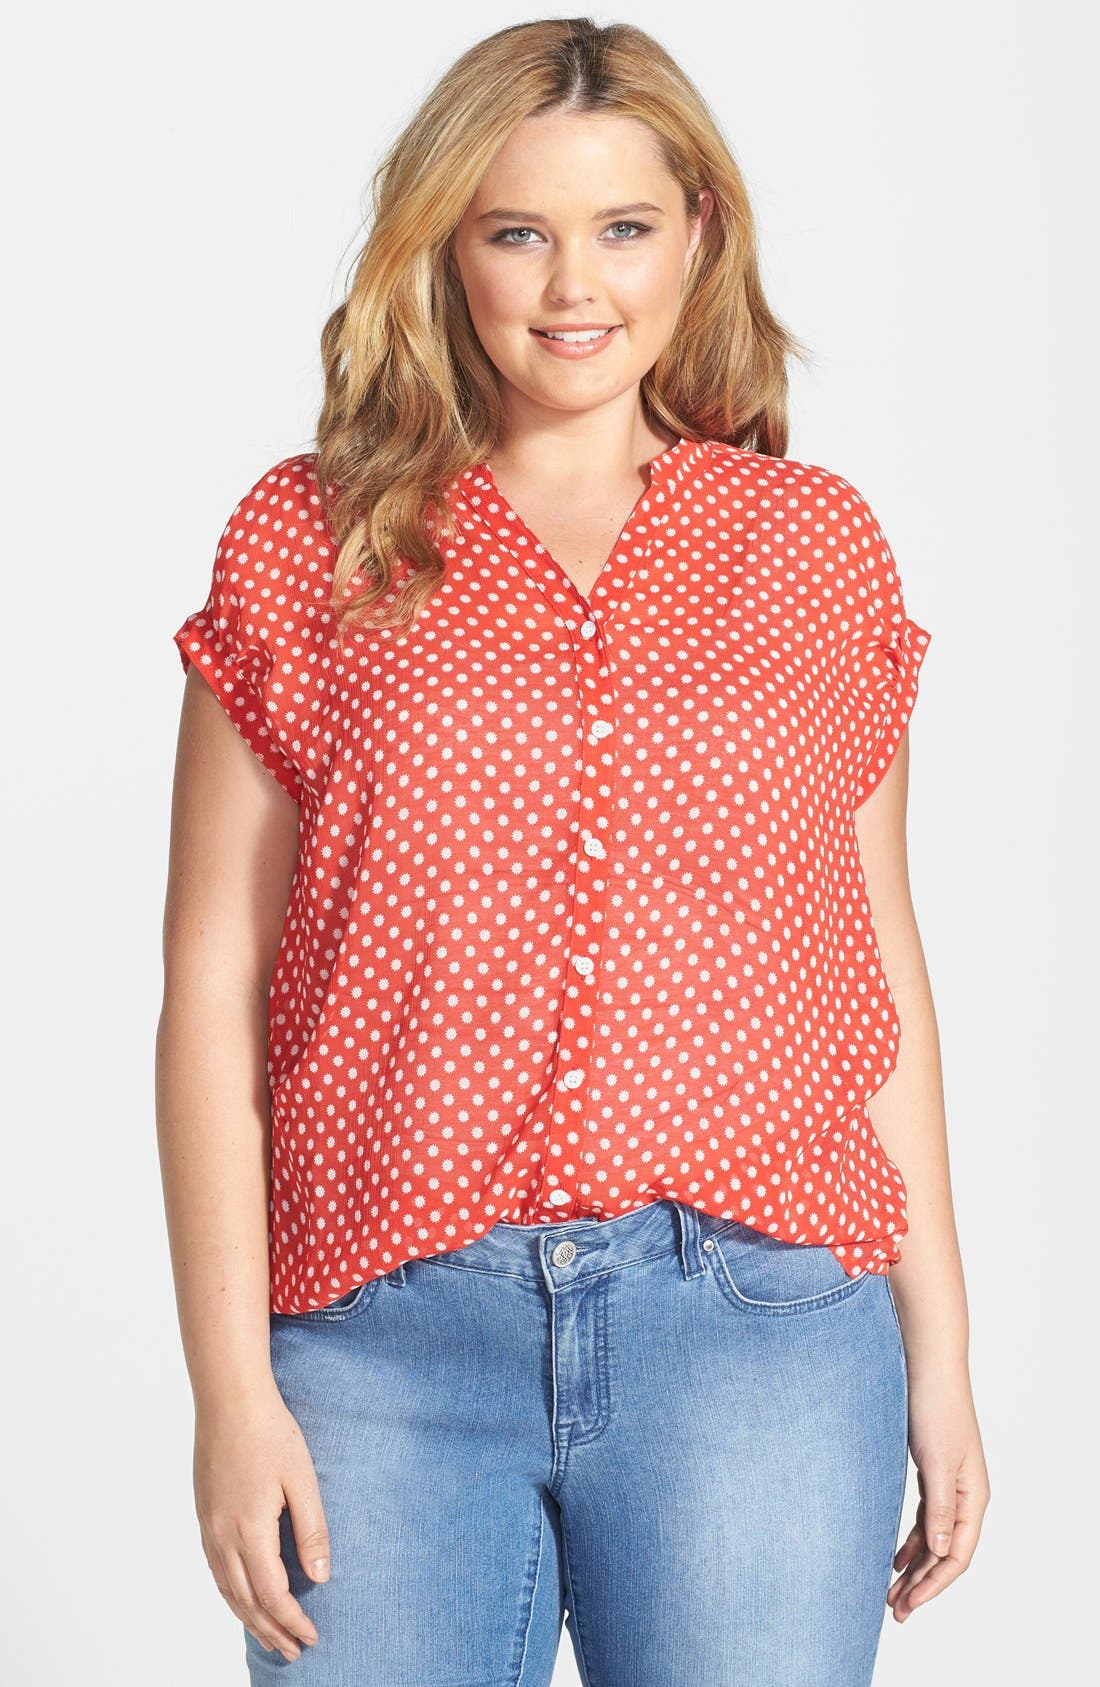 Alternate Image 1 Selected - Two by Vince Camuto 'Star Dot' Blouse (Plus Size)